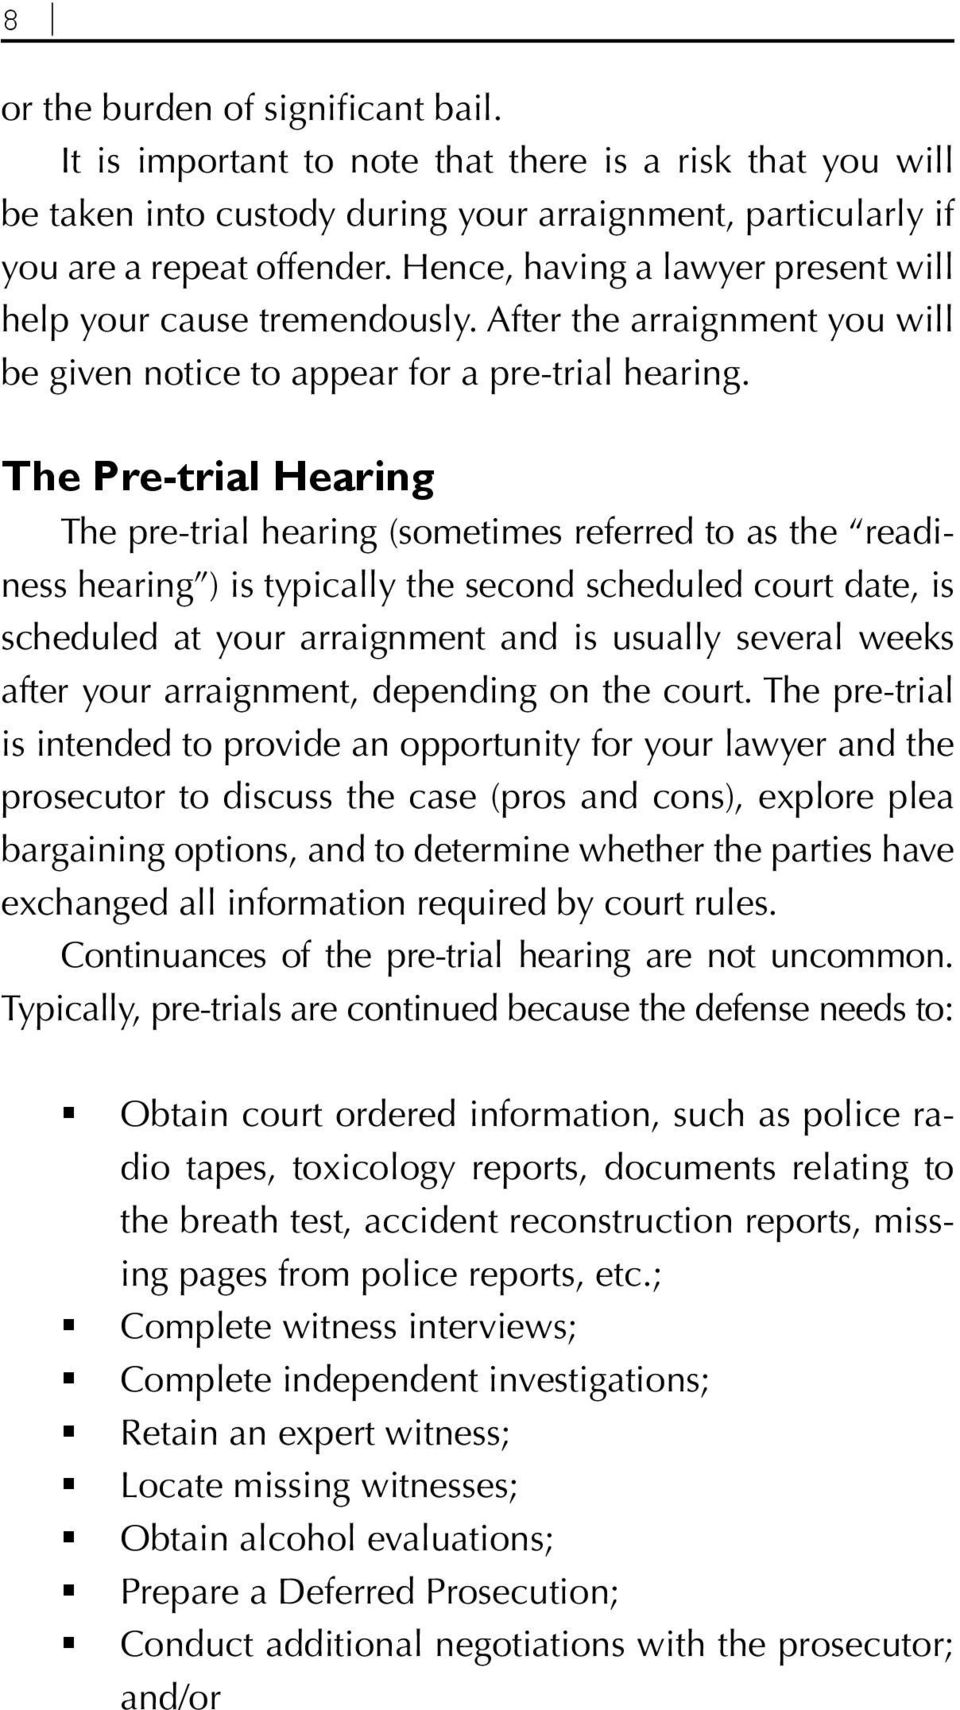 The Pre-trial Hearing The pre-trial hearing (sometimes referred to as the readiness hearing ) is typically the second scheduled court date, is scheduled at your arraignment and is usually several